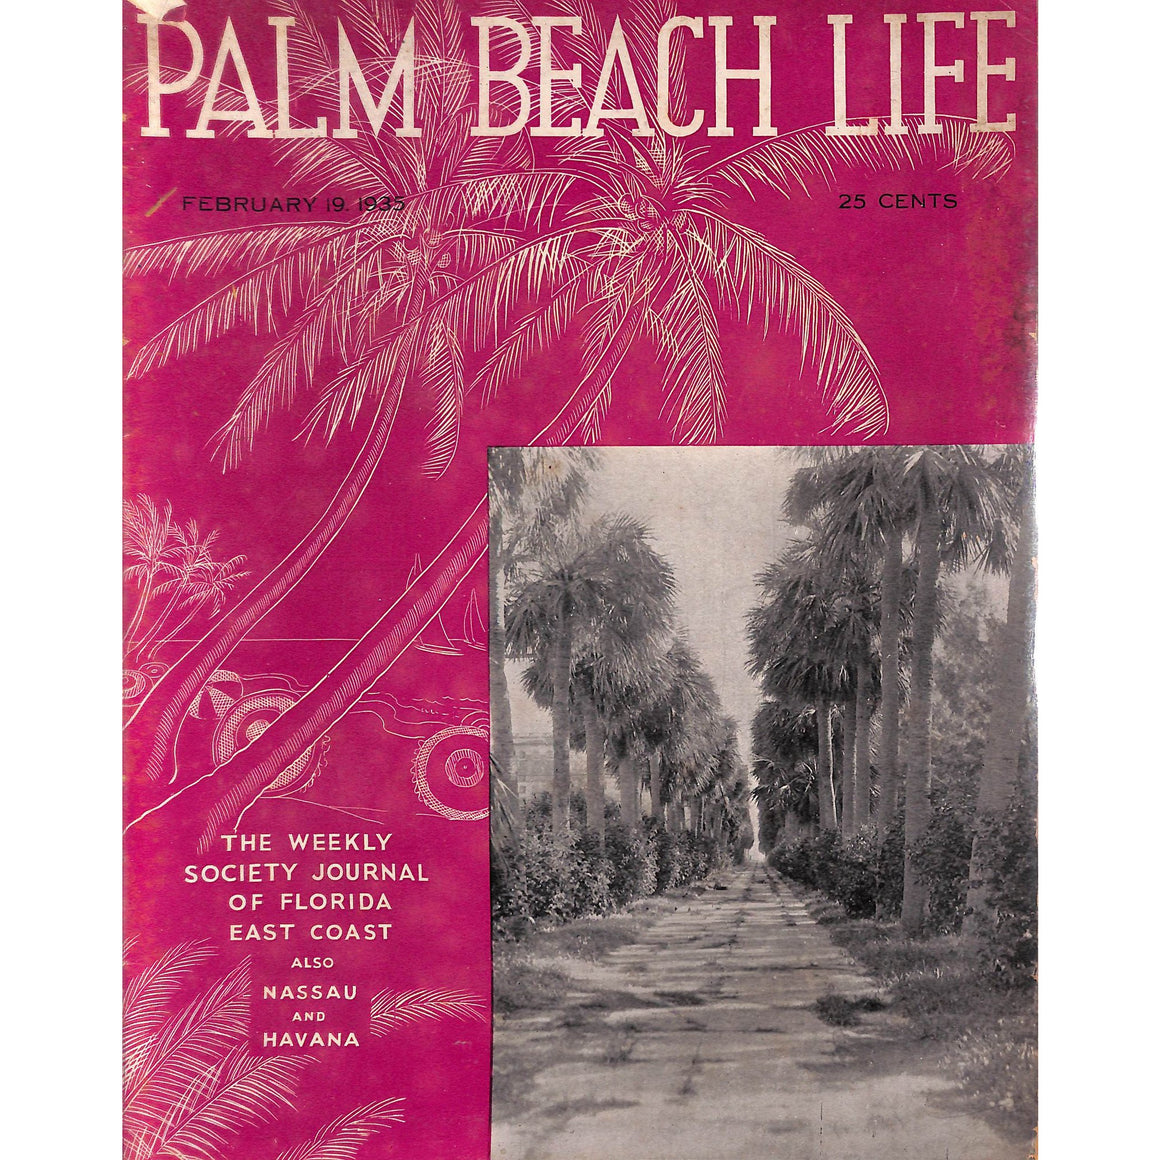 Palm Beach Life Magazine February 19, 1935